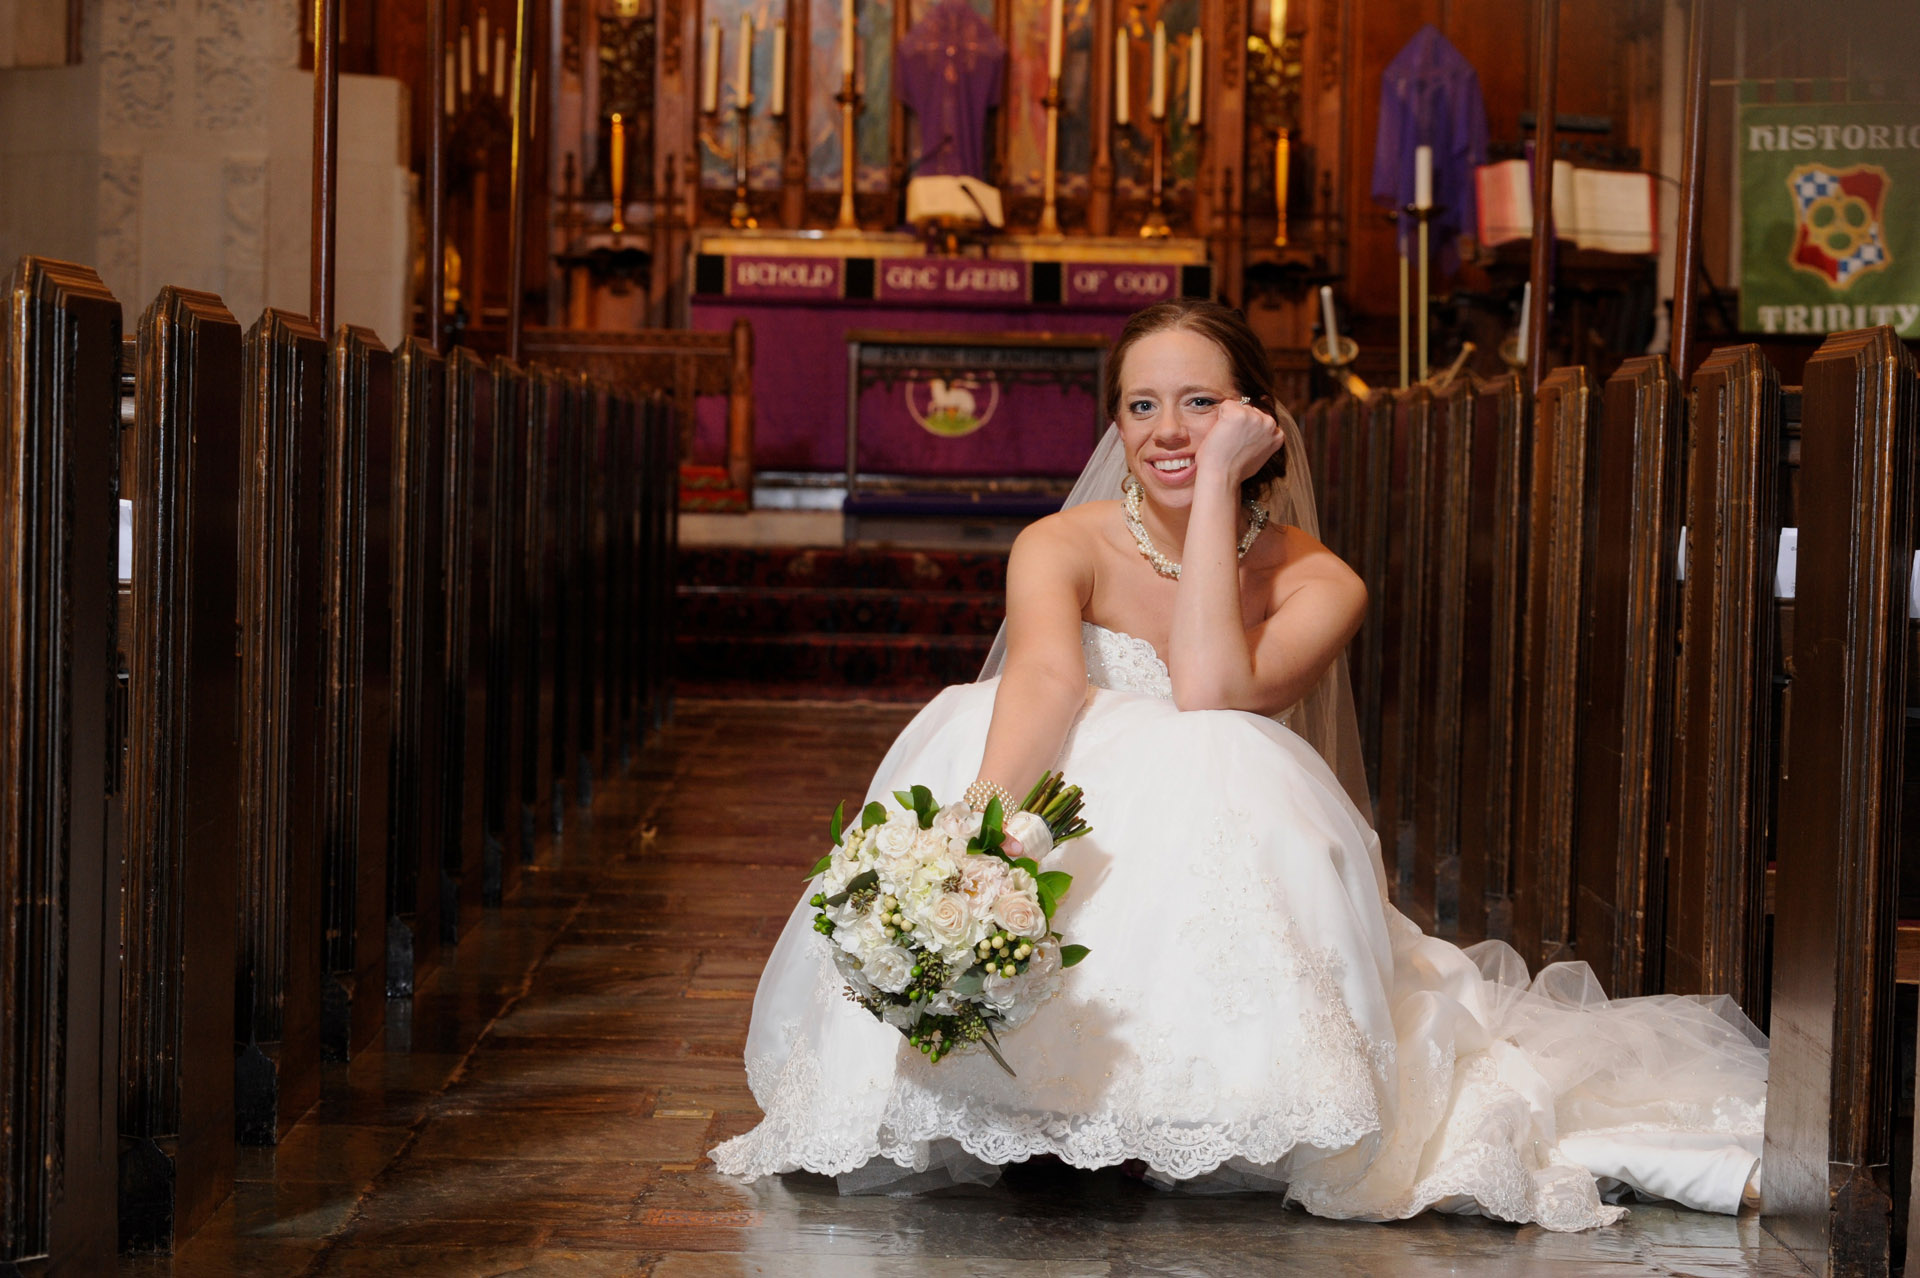 Colony Club wedding photographer's photo of Mindy taking a rest after her Detroit, Michigan wedding ceremony at the Historic Trinity Lutheran Church in Detroit.